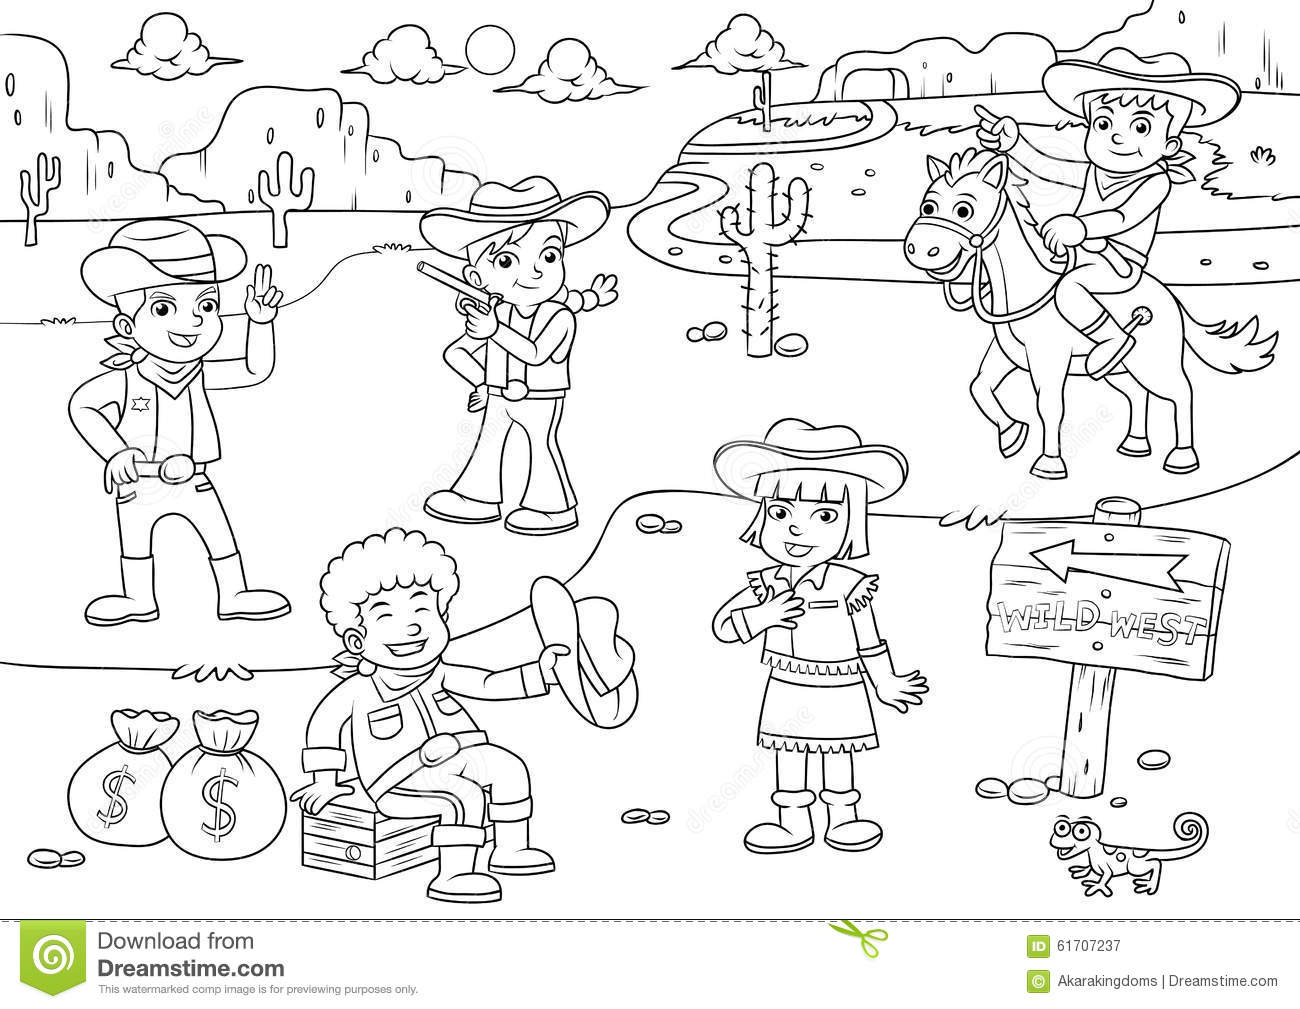 Derechos Y Obligaciones De Los Ninos Dibujos Para Colorear: Illustration Of Cowboy Wild West Child Cartoon For